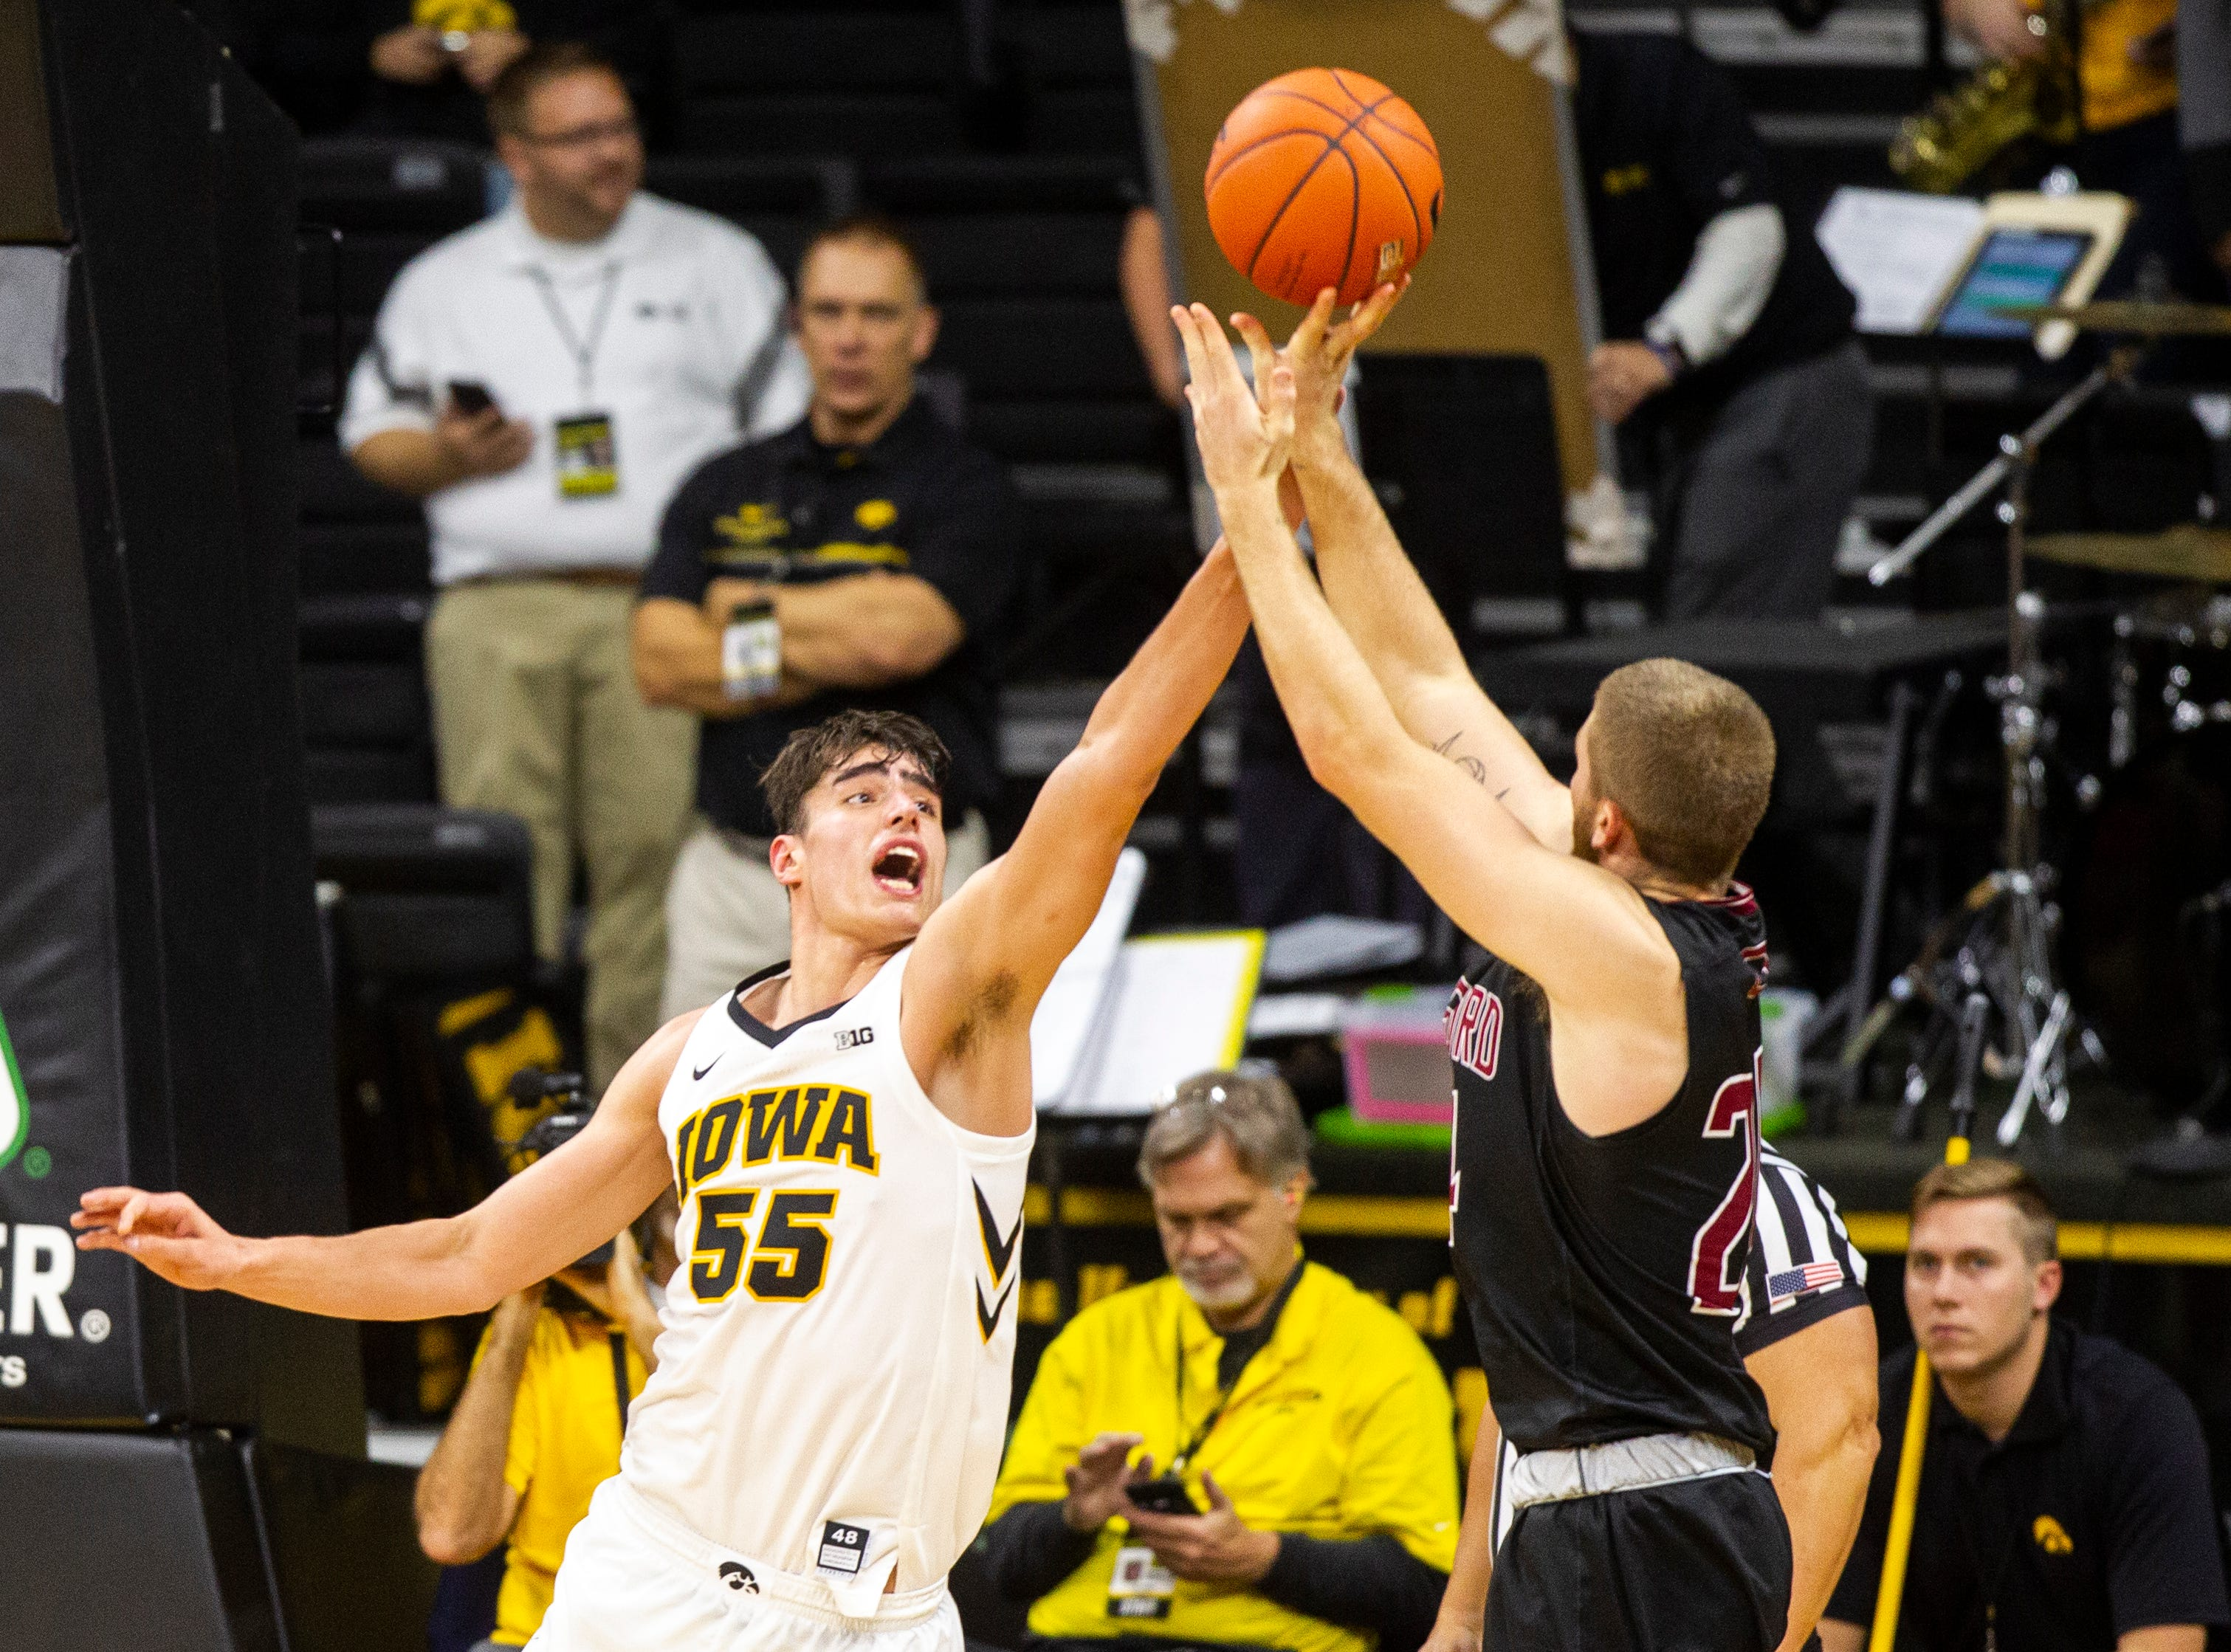 Iowa forward Luka Garza (55) attempts to block Guildford's Kyler Gregory (24) shot during a men's basketball exhibition game on Sunday, Nov. 4, 2018, at Carver-Hawkeye Arena in Iowa City.